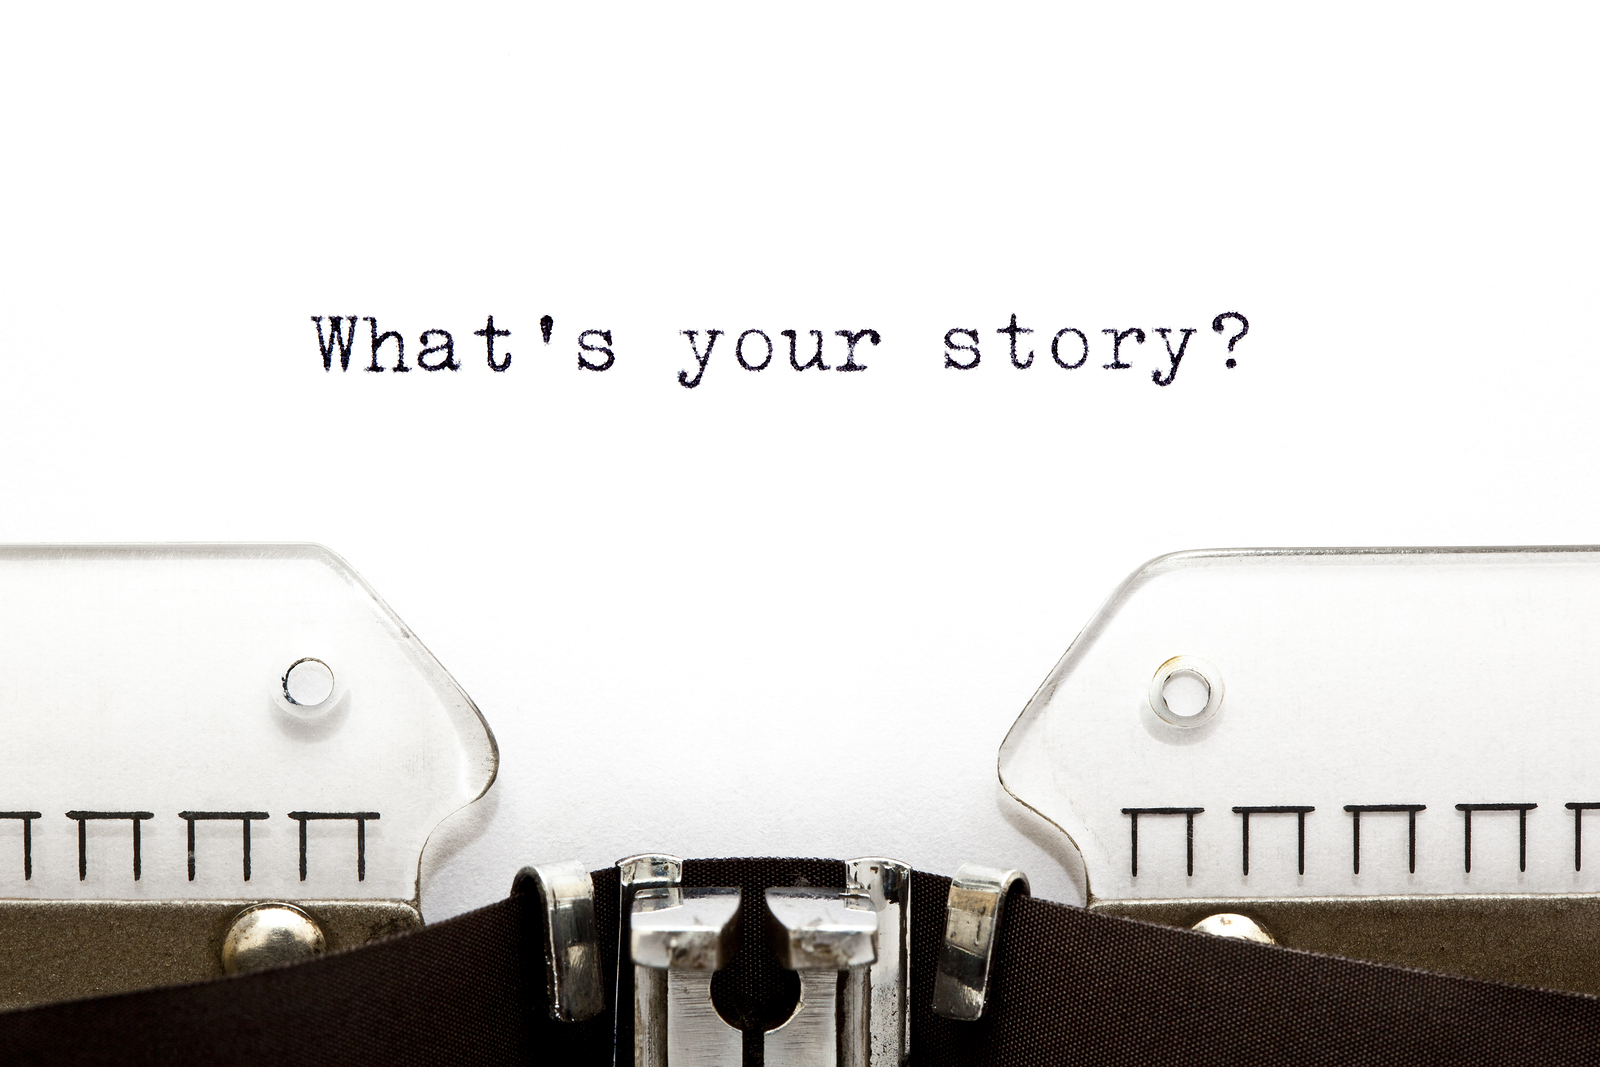 Concept image with What is Your Story printed on an old typewriter